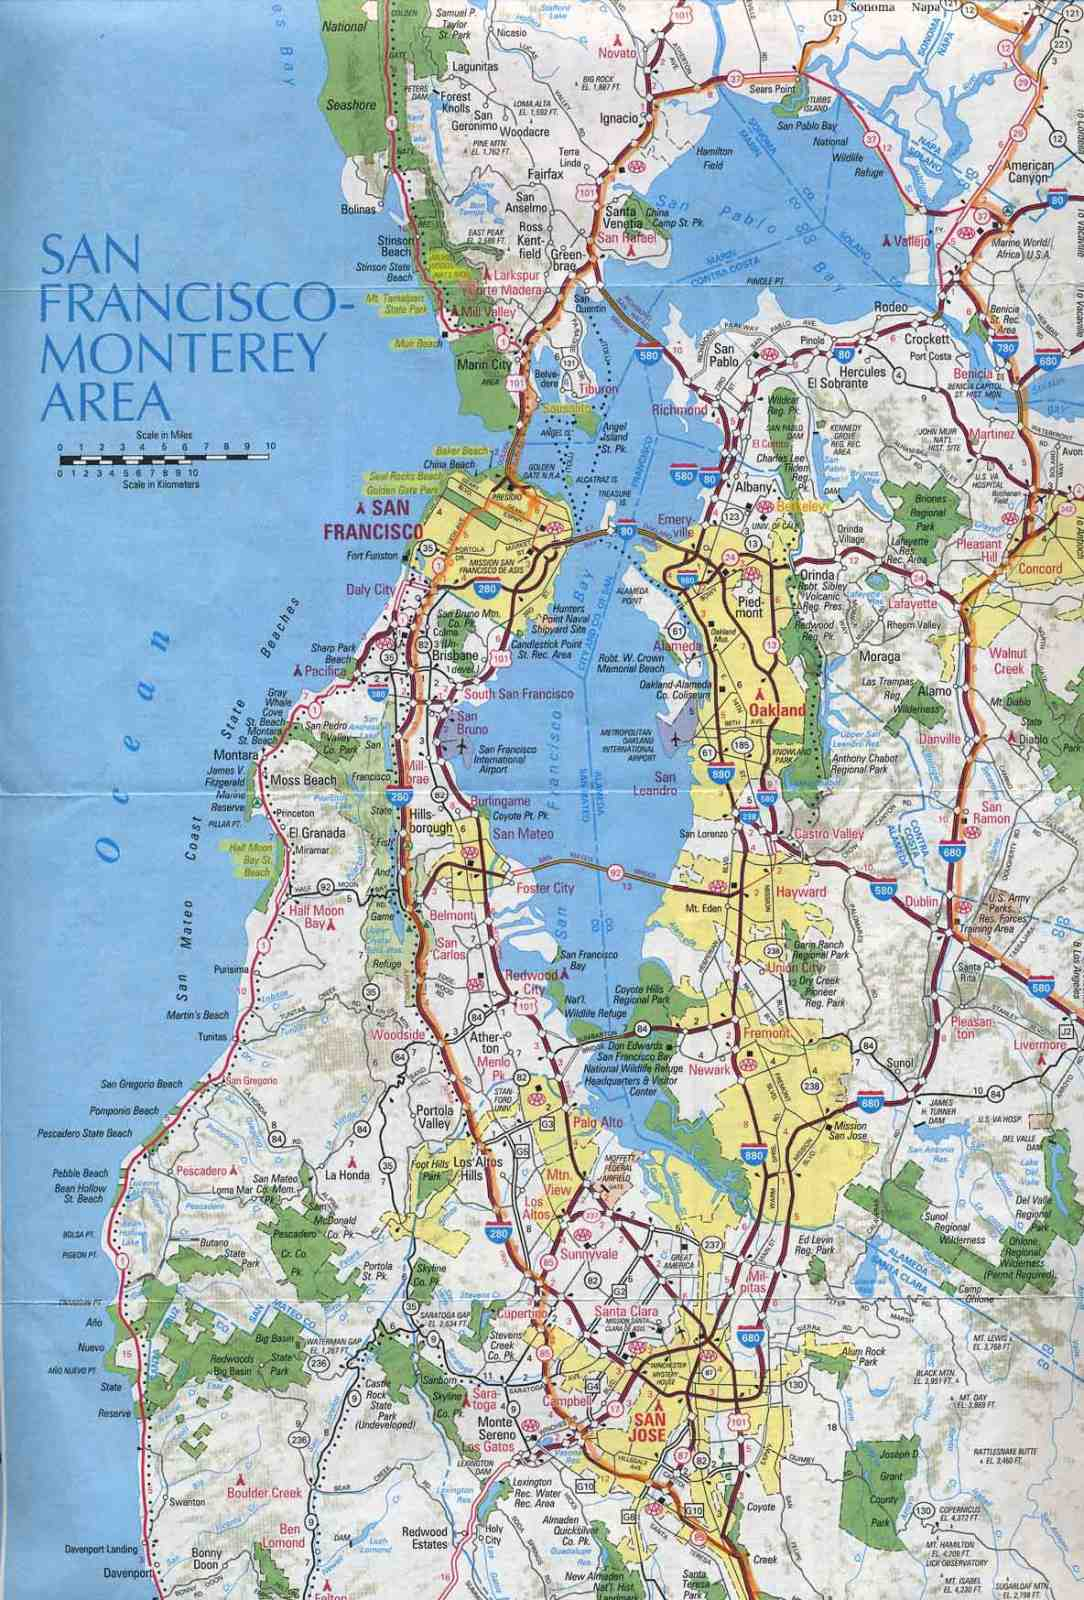 Online Maps San Francisco Neighborhood Map